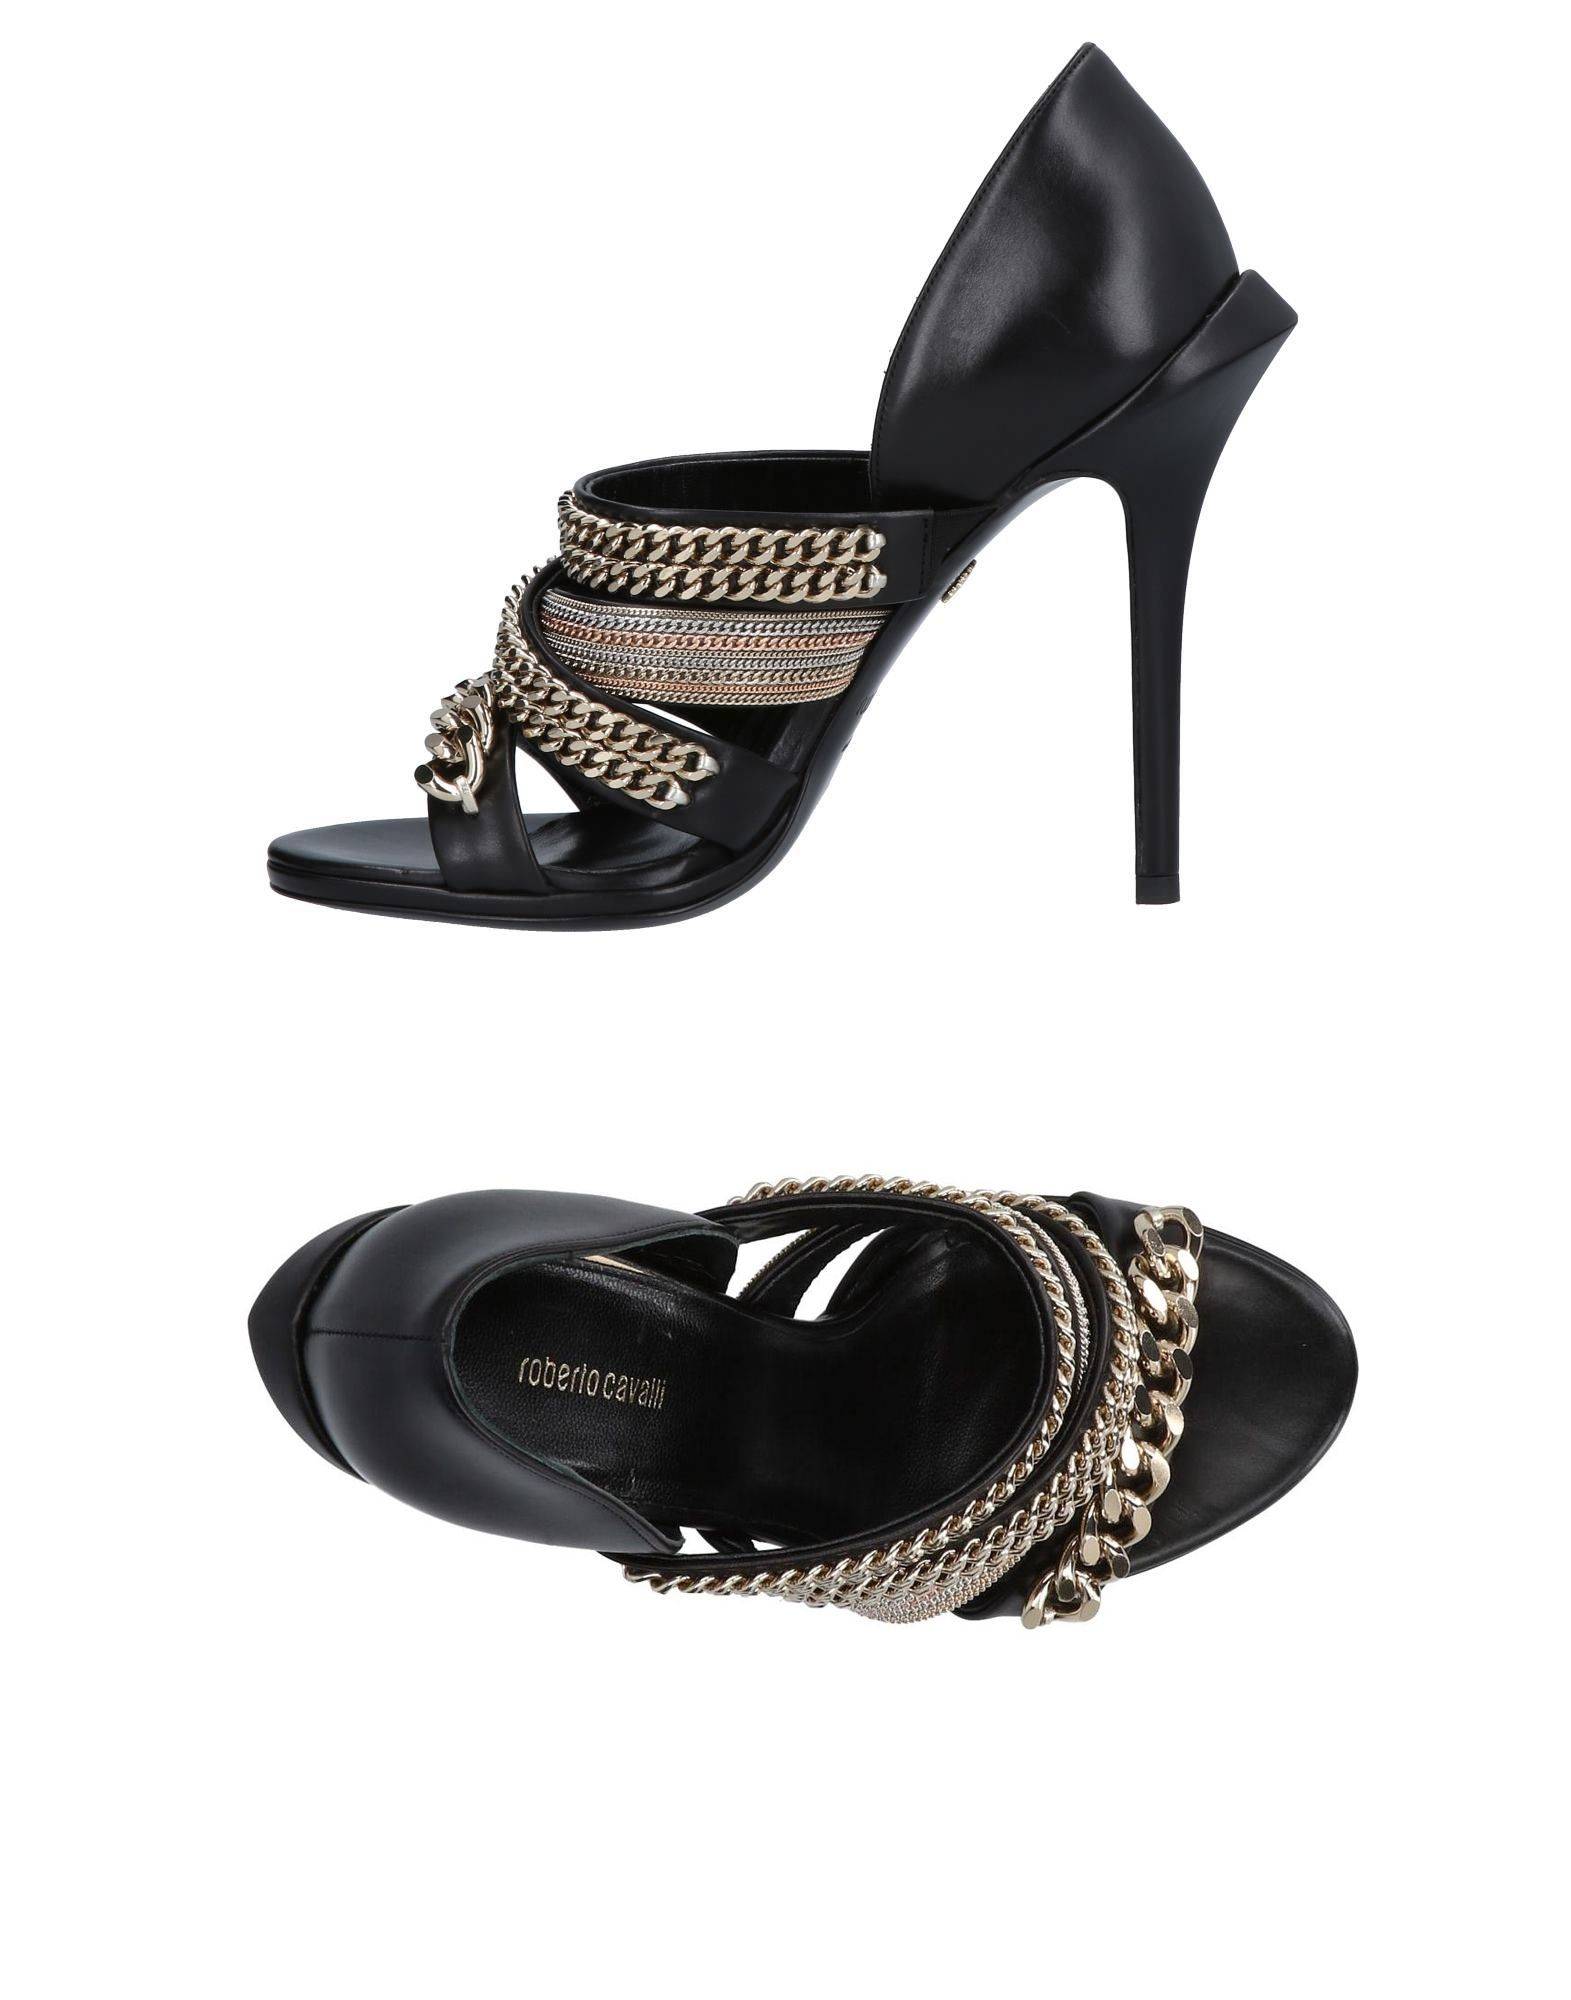 Roberto Cavalli Sandals Sandals - Women Roberto Cavalli Sandals Sandals online on  United Kingdom - 11478563GA 569bb1